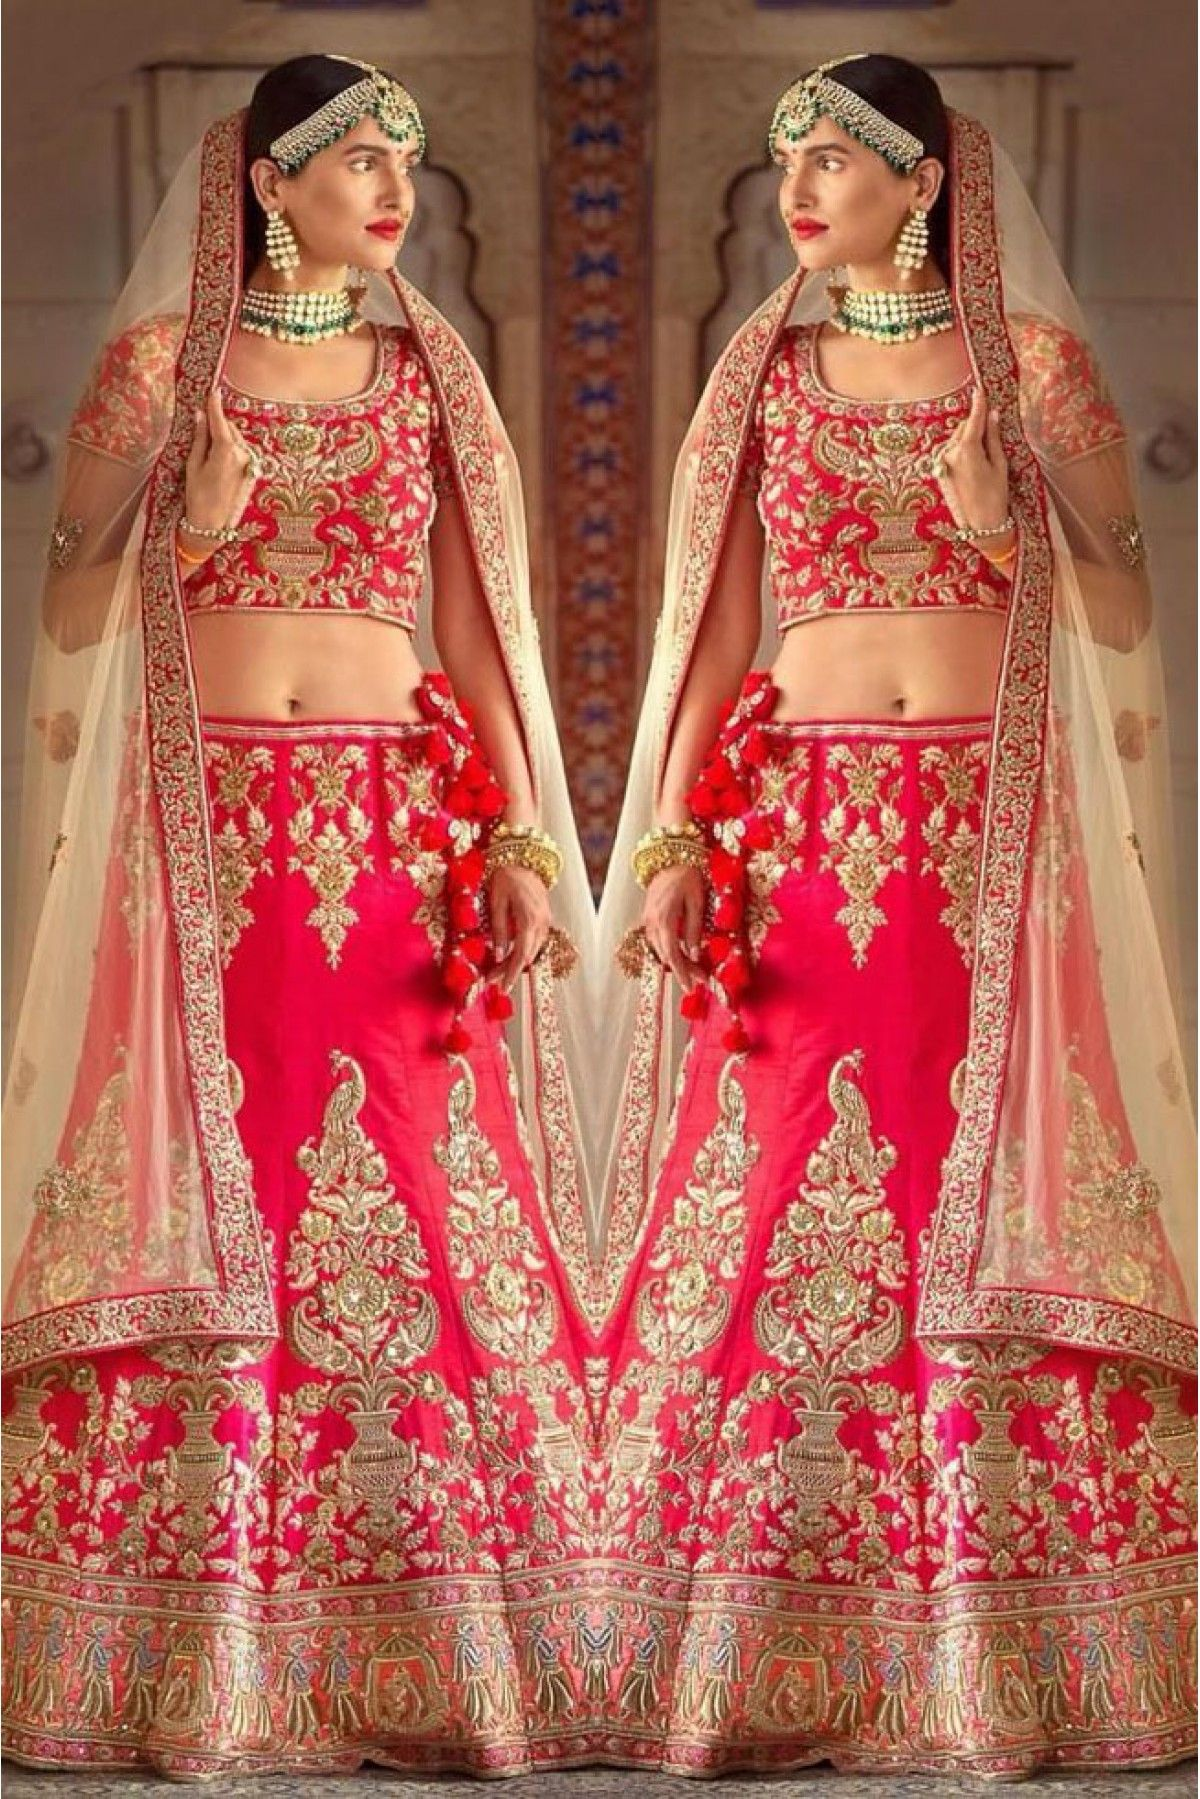 0df7b06d09 Red Colour Ruby Silk Fabric Party Wear Lehenga Choli Comes With Matching  Blouse. This Lehenga Choli Is Crafted With Embroidery. This Lehenga Choli  Comes ...